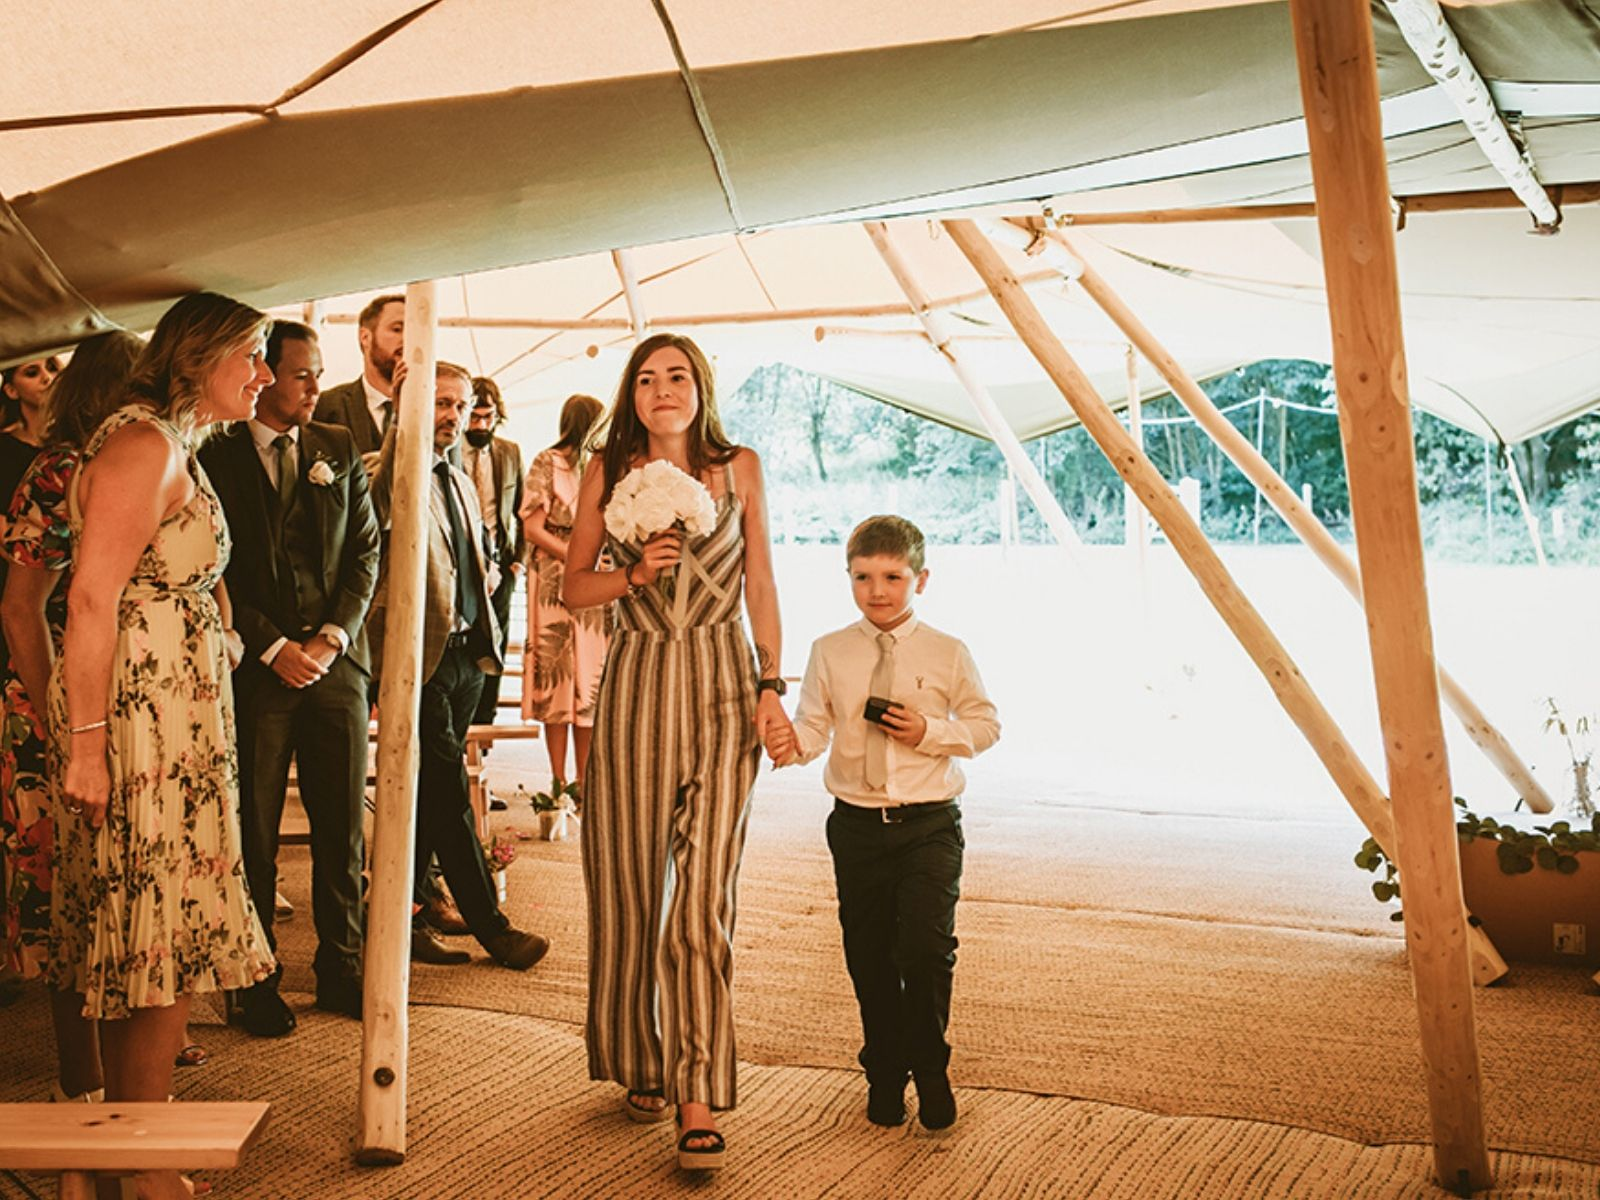 Hidden Hive wedding venue in Rosliston Derbyshire by Peak Tipis